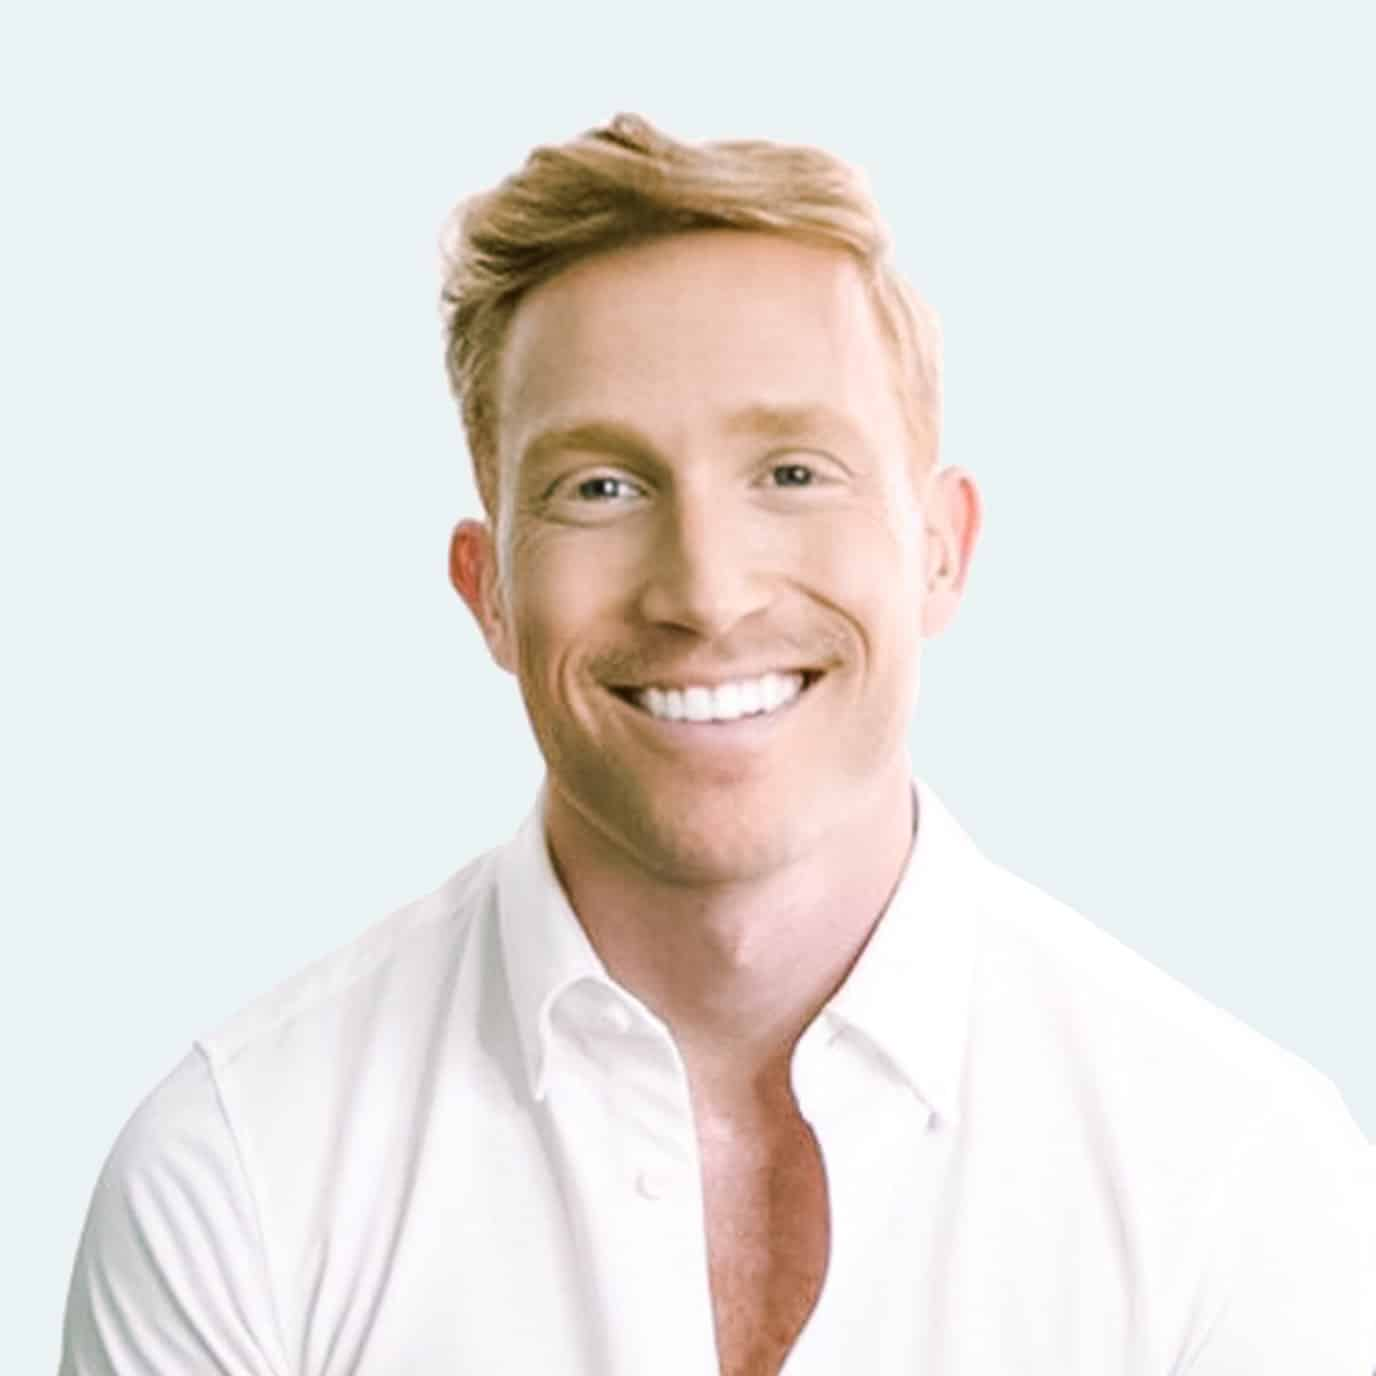 Dr. Logan Jones, Psy.D., Clinical Psychologist NYC and Head of Practice Clarity Therapy NYC